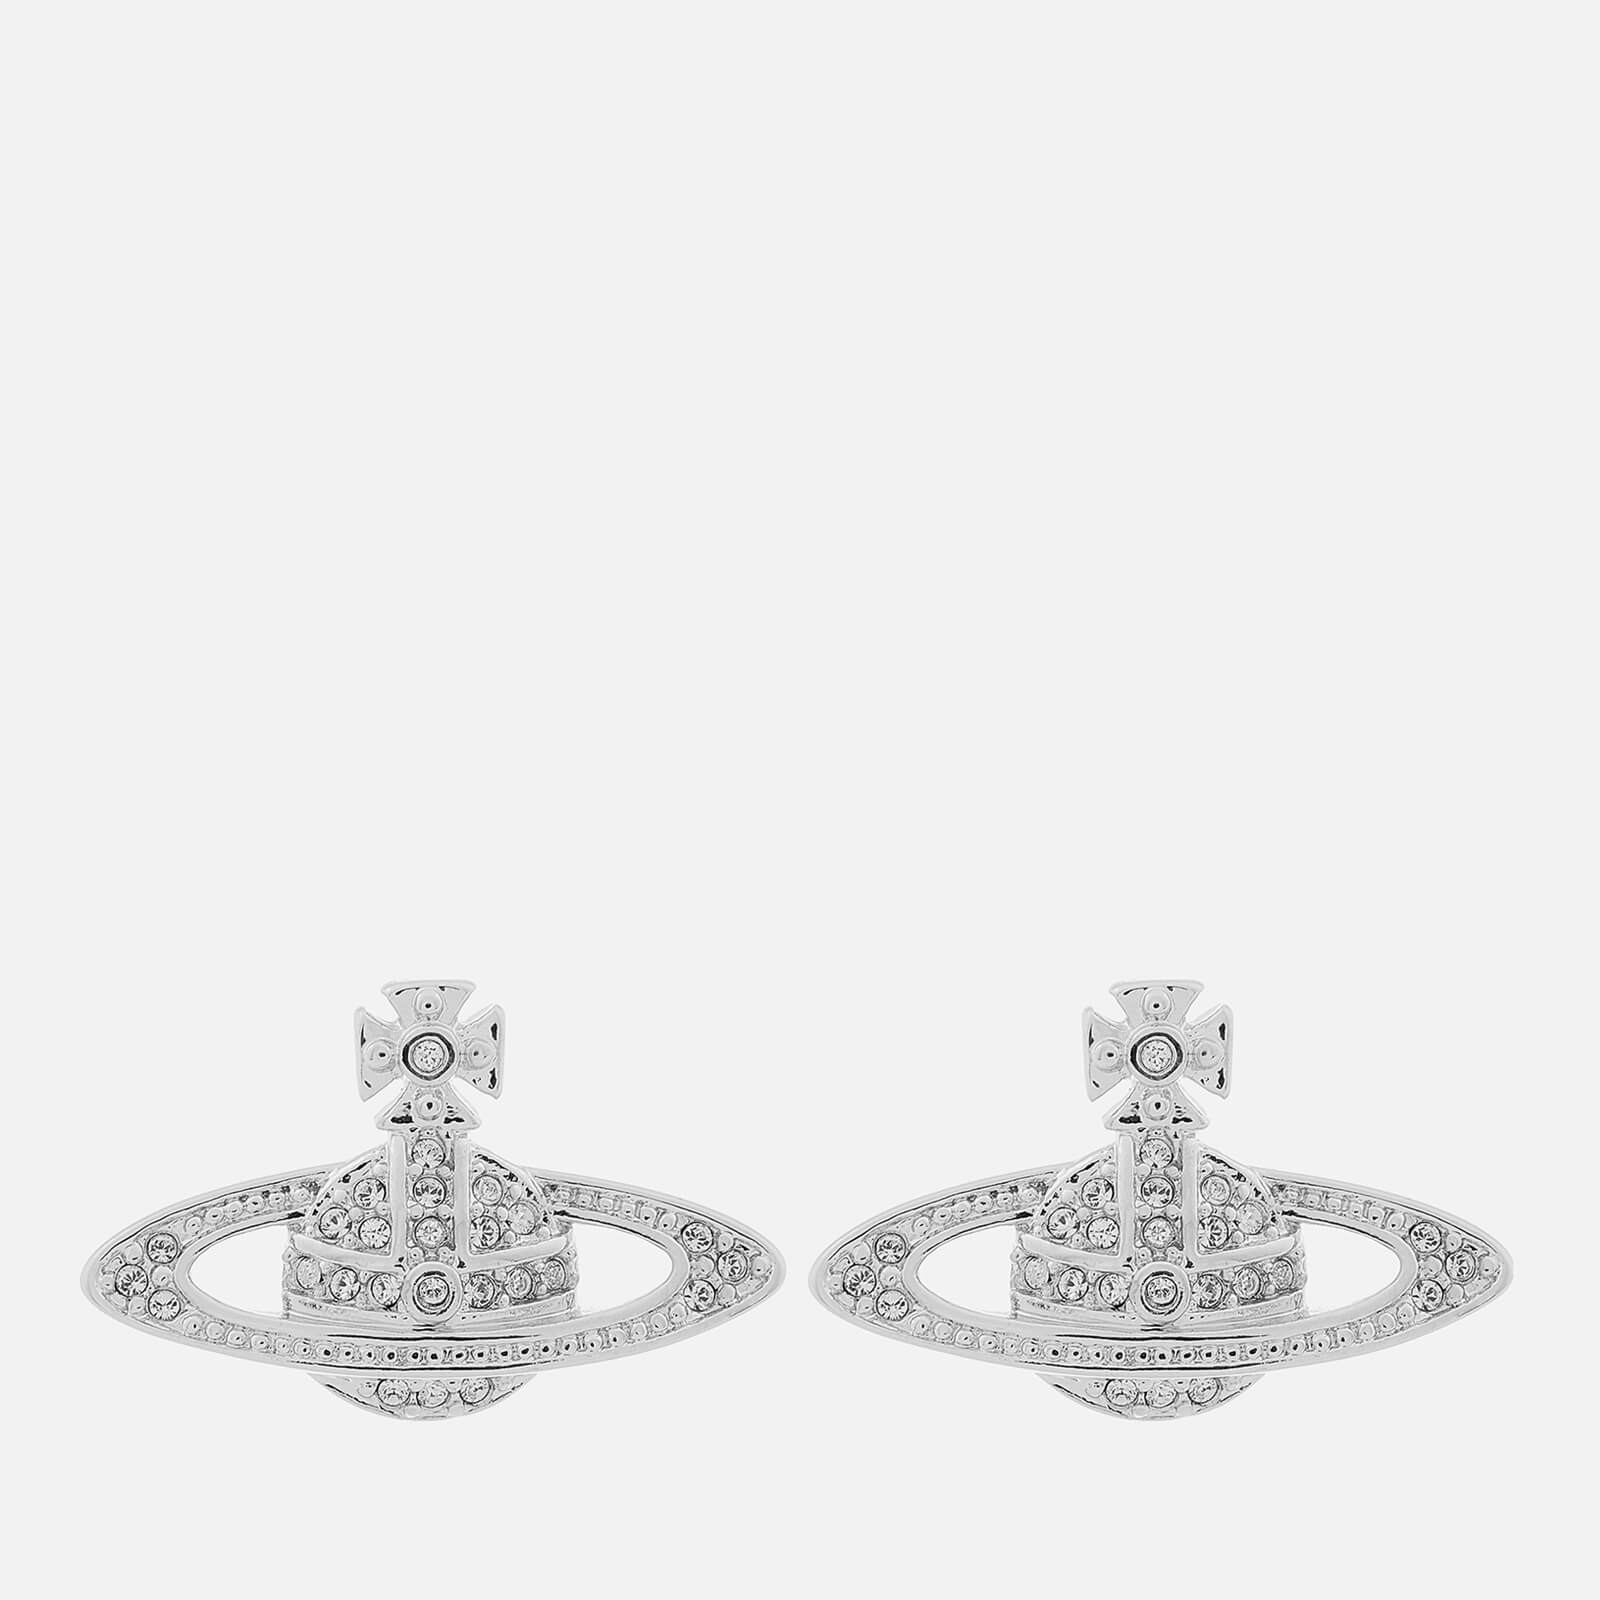 1daae2c9171 Vivienne Westwood Women's Mini Bas Relief Earrings - Rhodium - Free UK  Delivery over £50